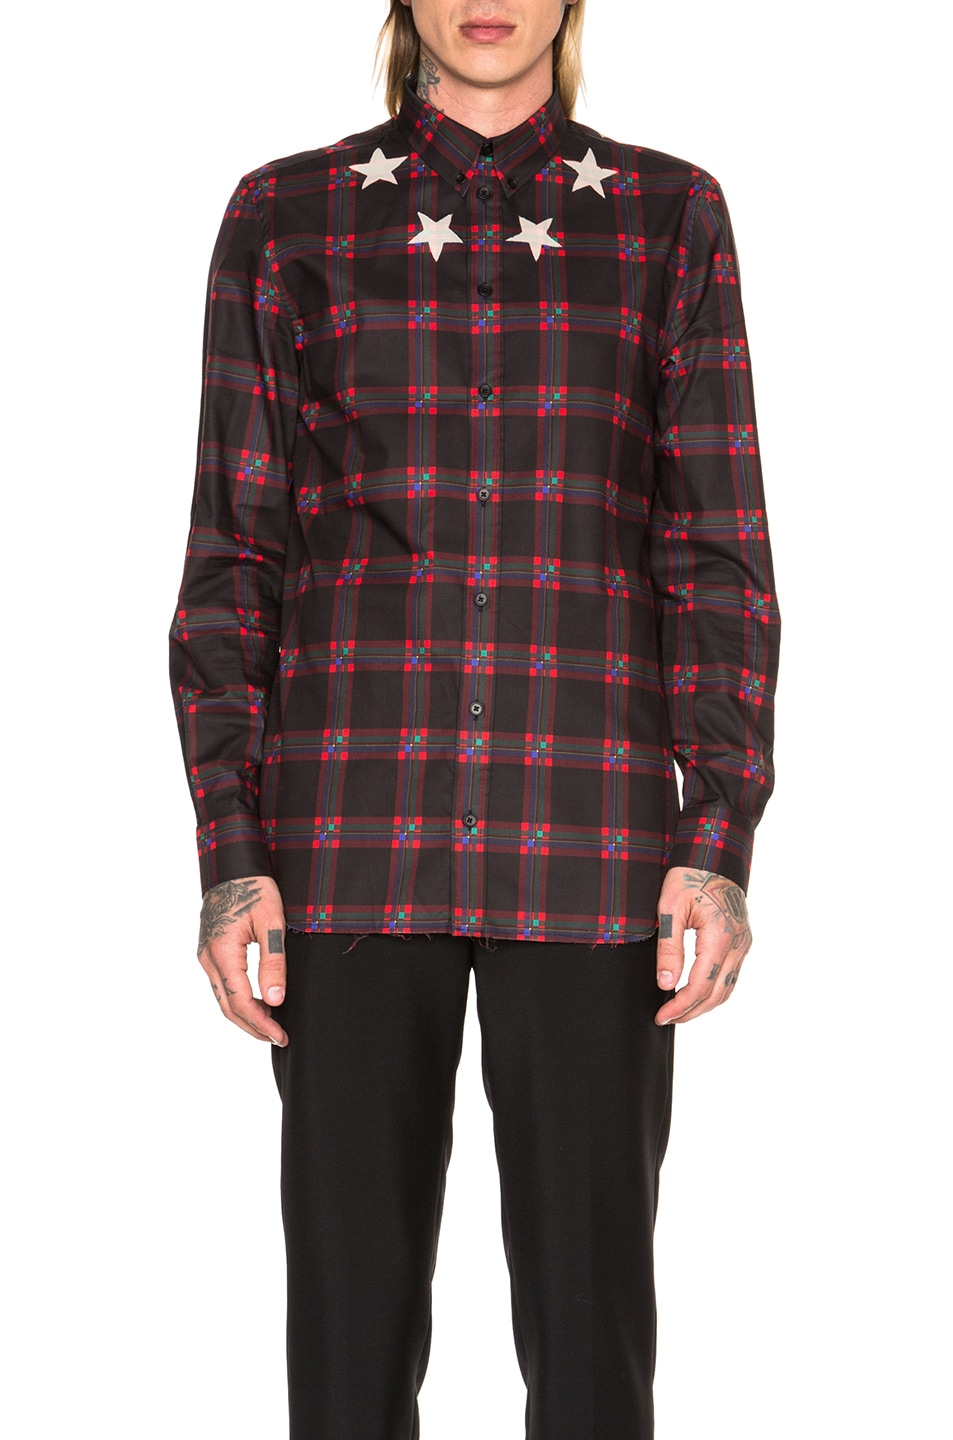 87ed5b27d263 Image 1 of Givenchy Star Bleach Plaid Shirt in Black   Red